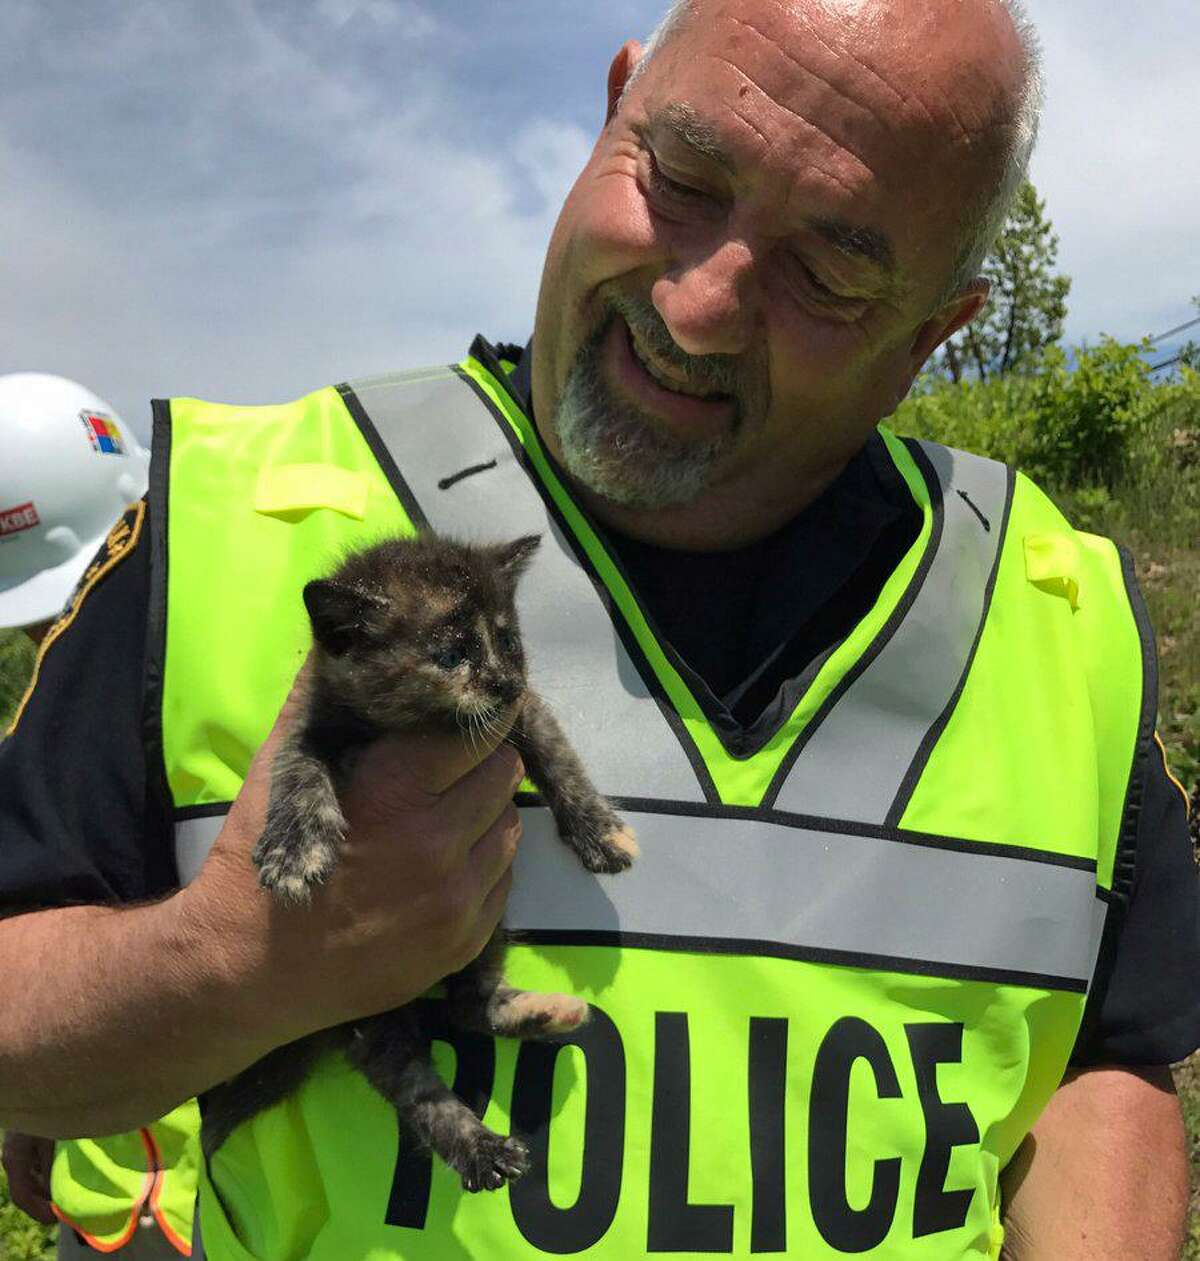 """Norwalk Police Department Officer Russell Oullette one of three abandoned kittens that he rescued from a construction site on Reed Street on Tuesday, May 16, 2017. """"The kittens were in harm's way of the large construction vehicles at the site. The kittens were turned over to animal rescue and are in good condition,"""" Norwalk police posted on their Facebook page."""